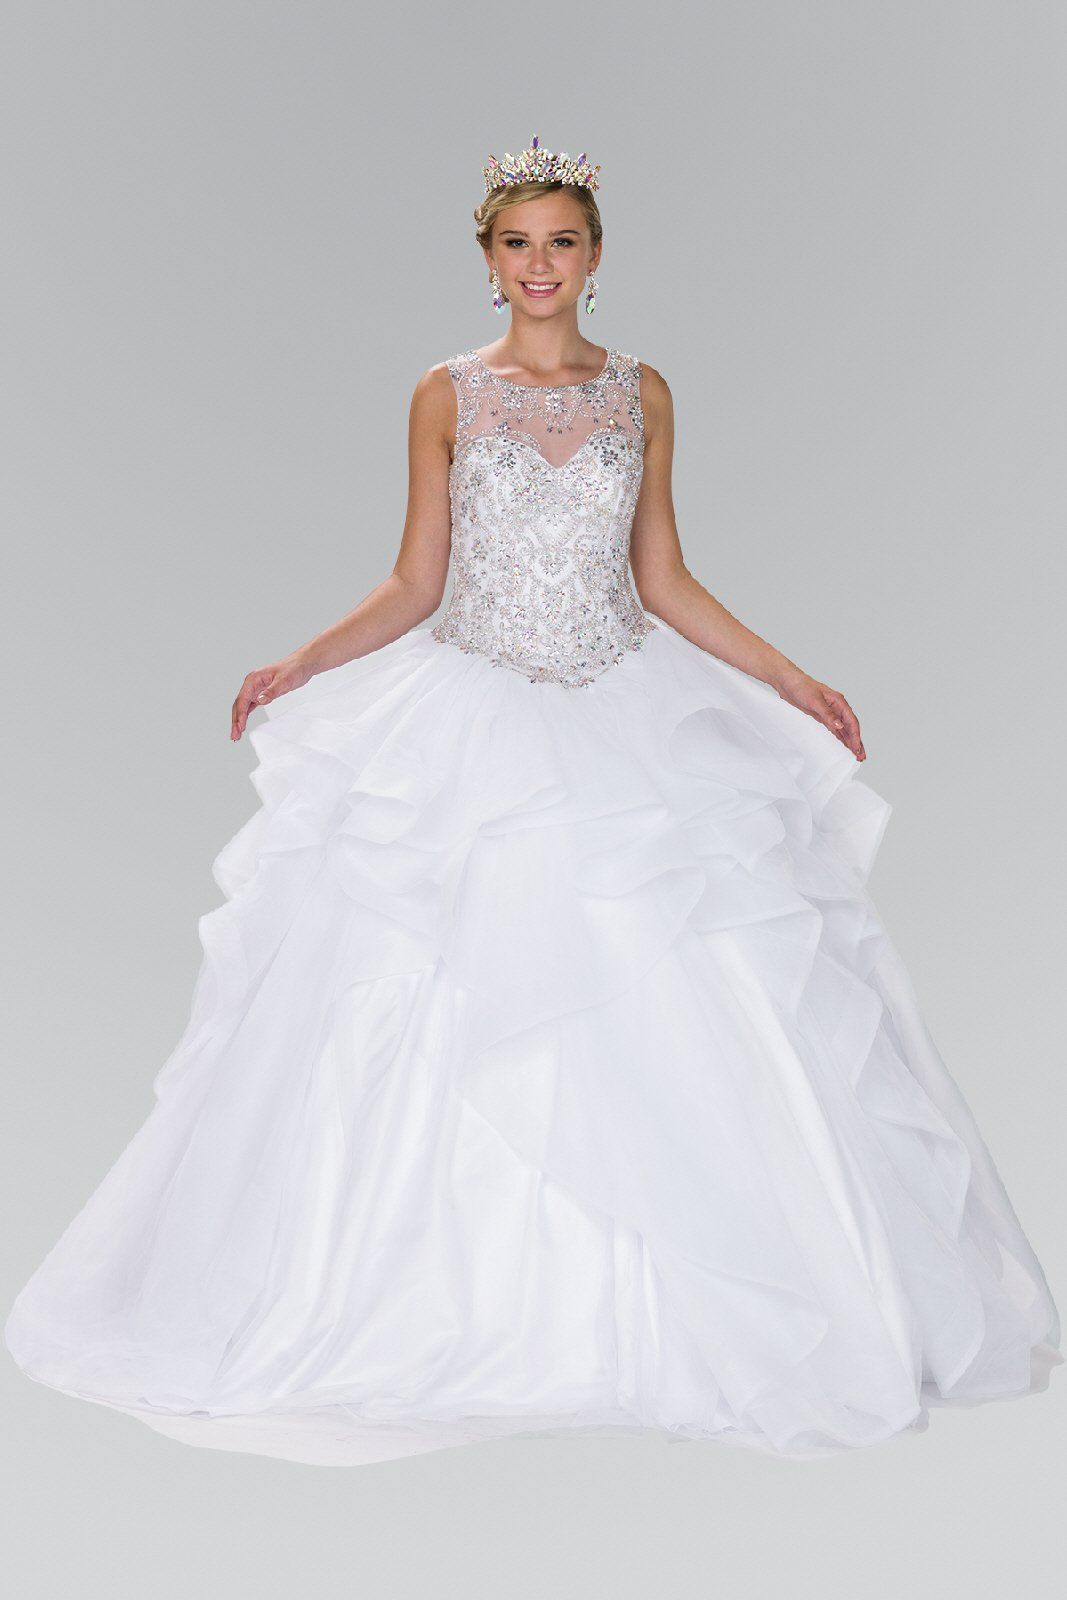 White Ball gown dress with ruffle gls 2378 – Simply Fab Dress